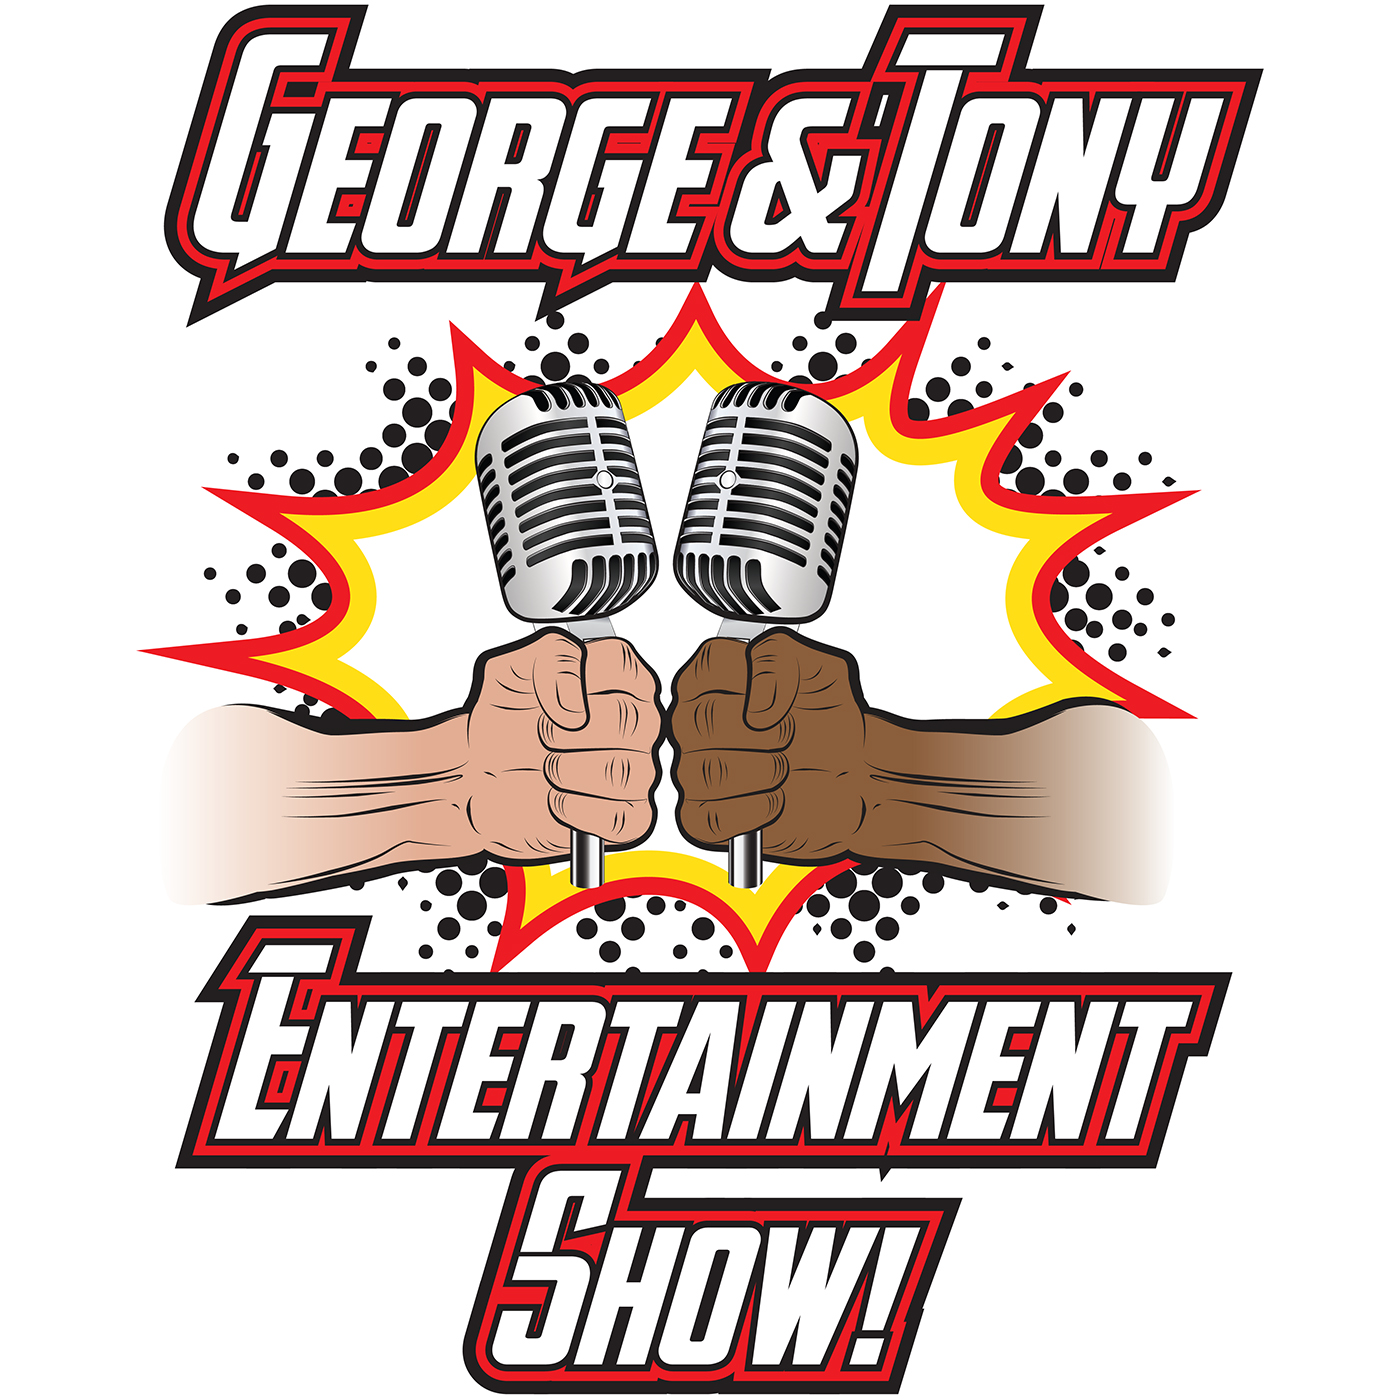 George and Tony Entertainment Show #48